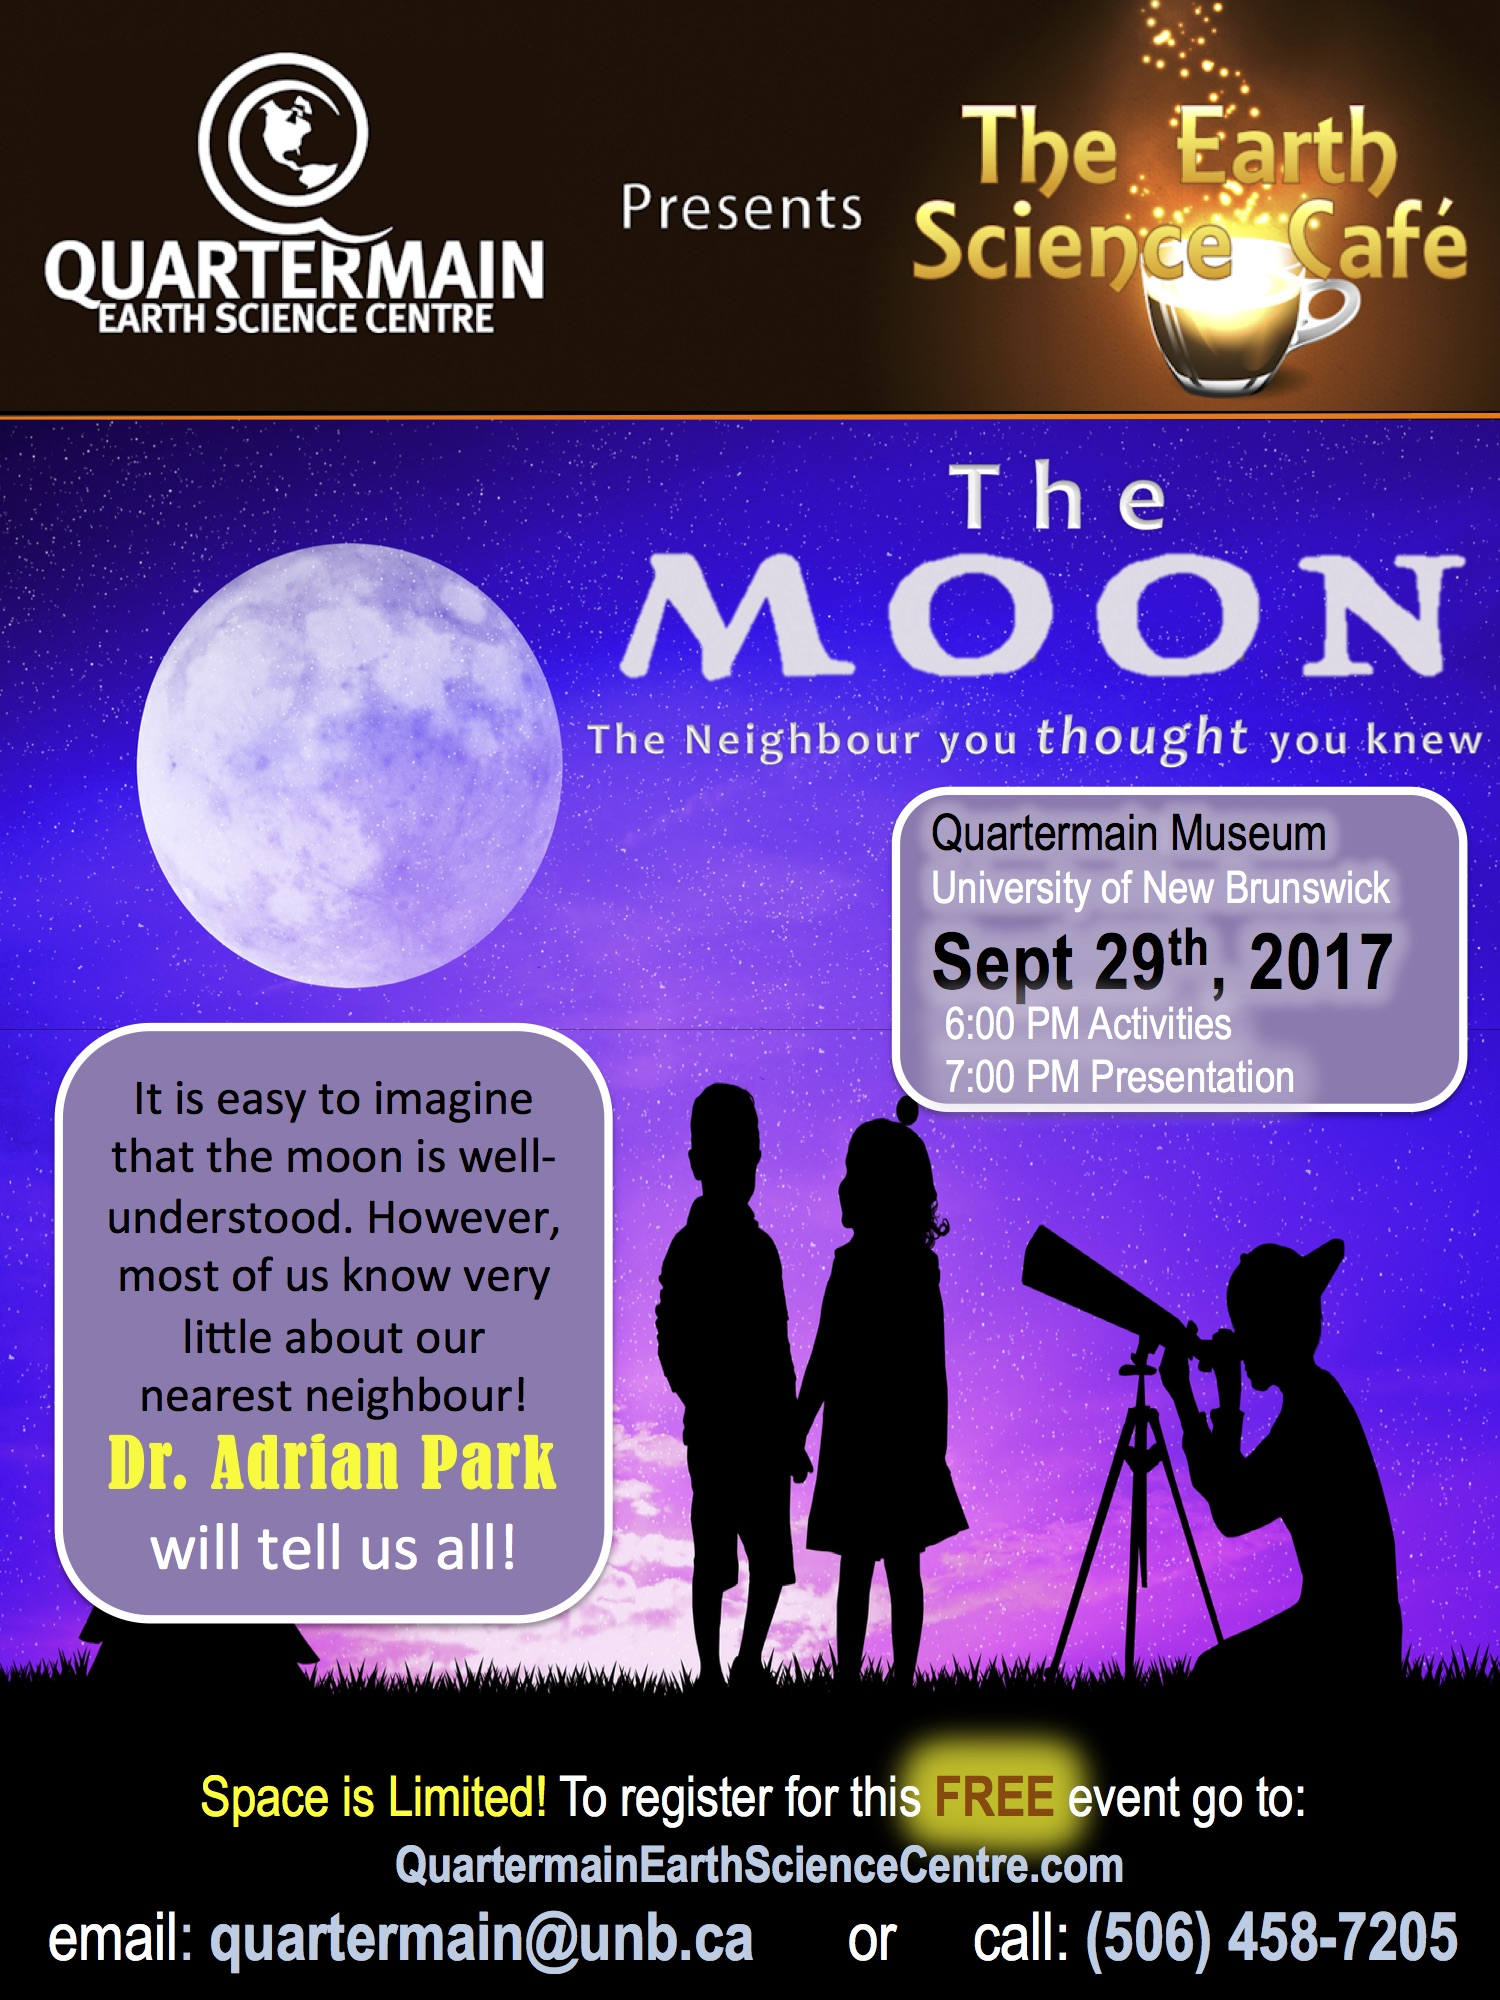 Quartermain ESC Poster Sept 29th Adrian Park 2017.jpg